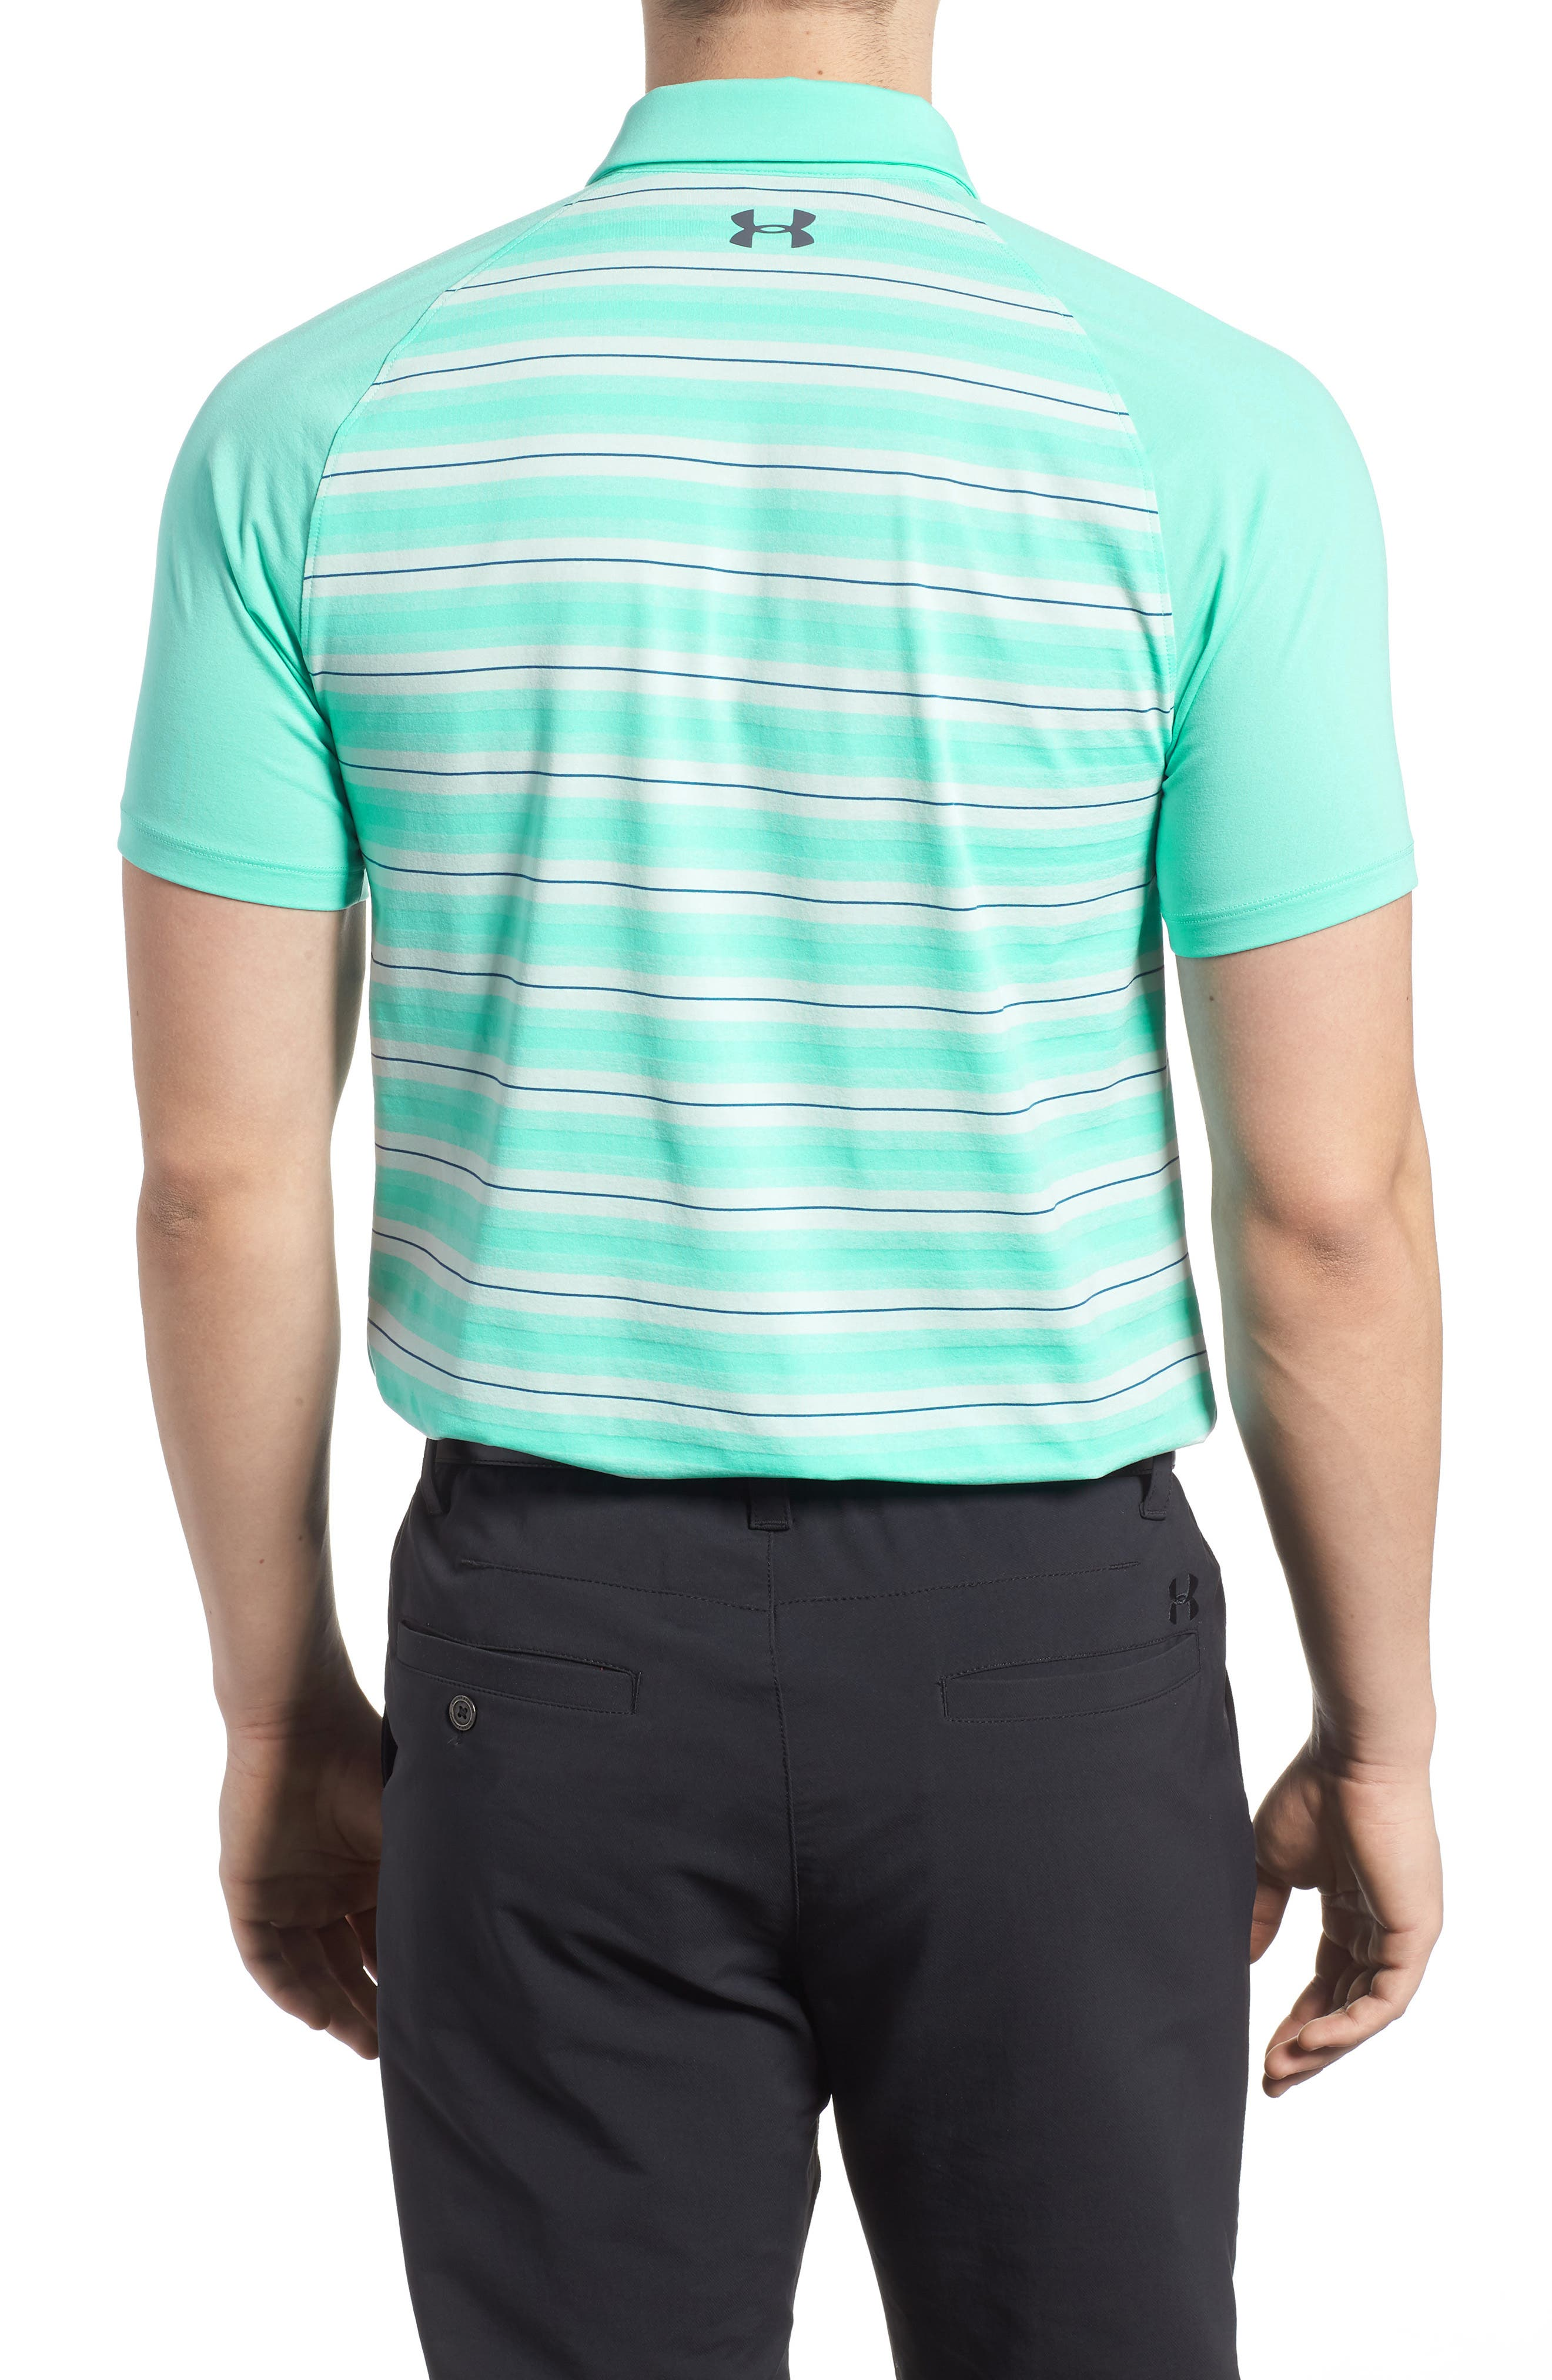 Threadborne Boundless Regular Fit Polo Shirt,                             Alternate thumbnail 2, color,                             TROPICAL TIDE/ RHINO GREY